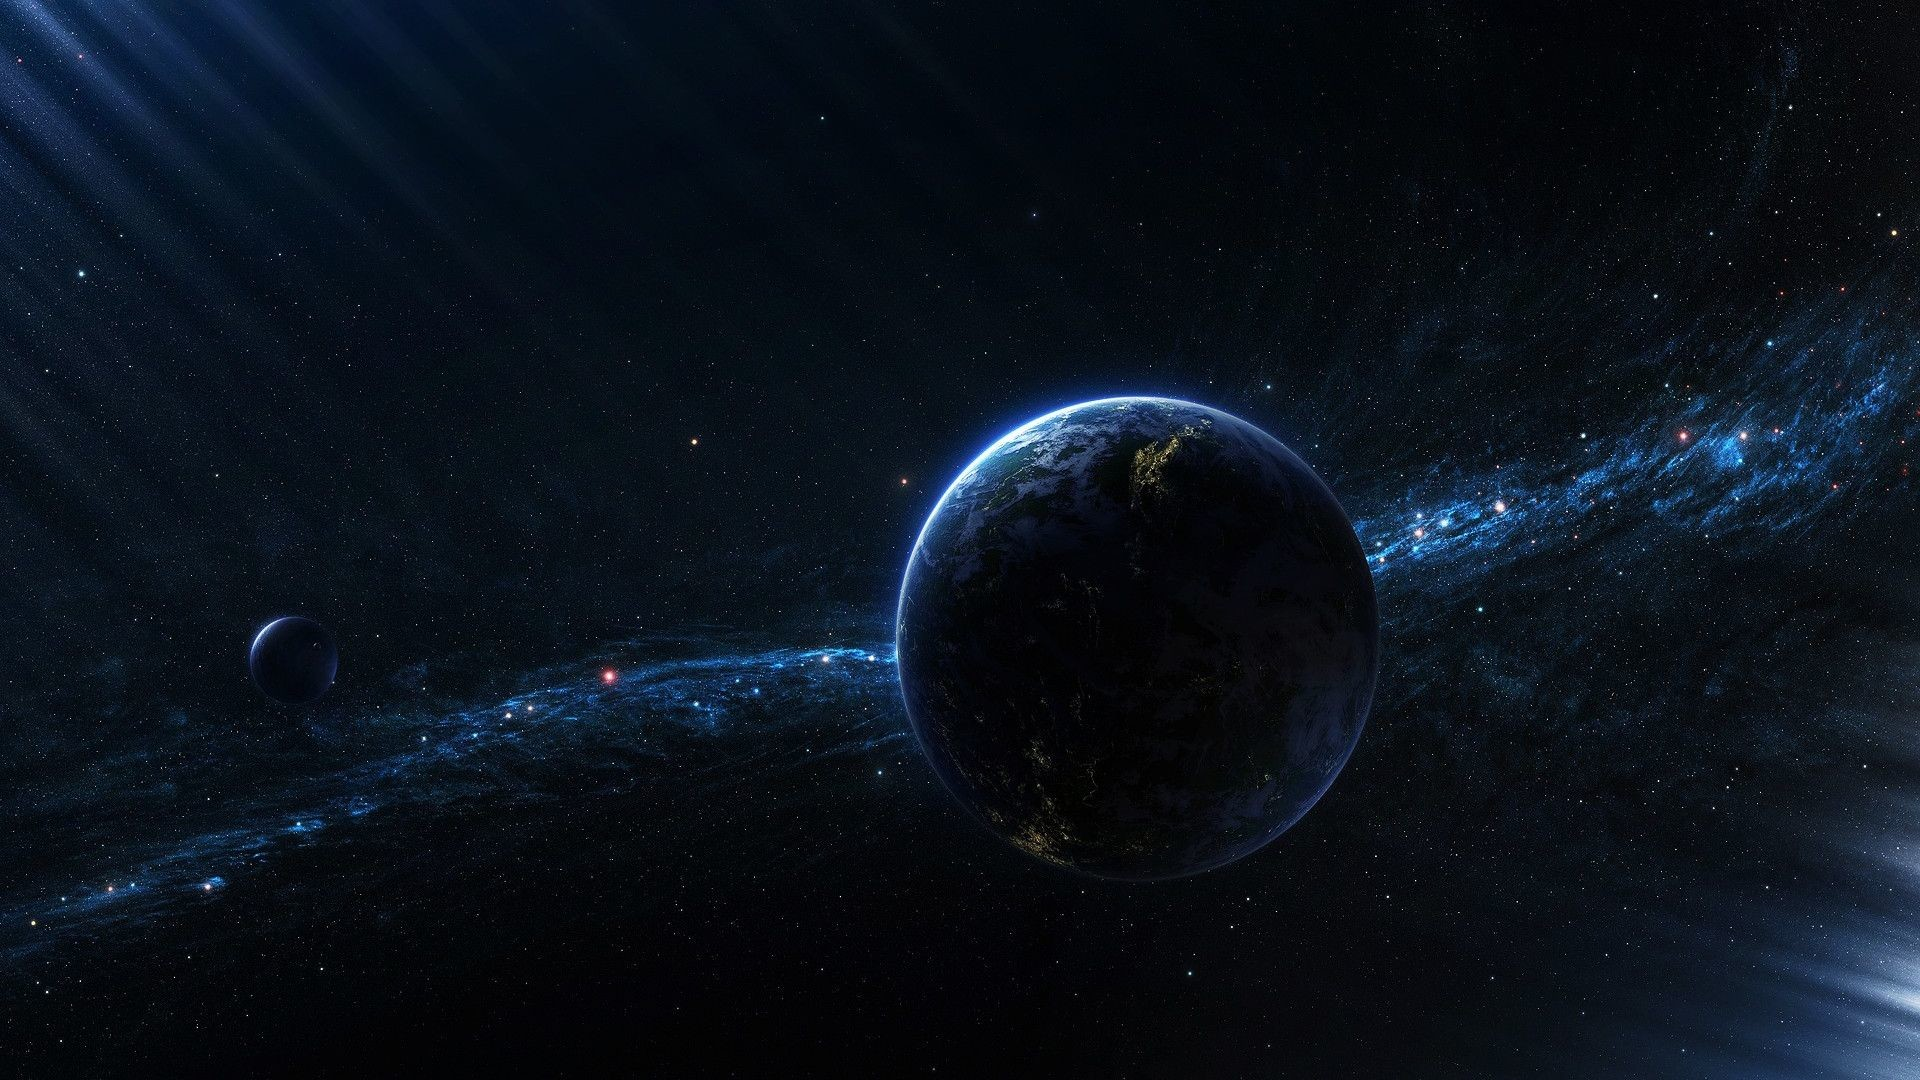 Real Pictures Of Space Wallpapers (57 Wallpapers) – Adorable Wallpapers